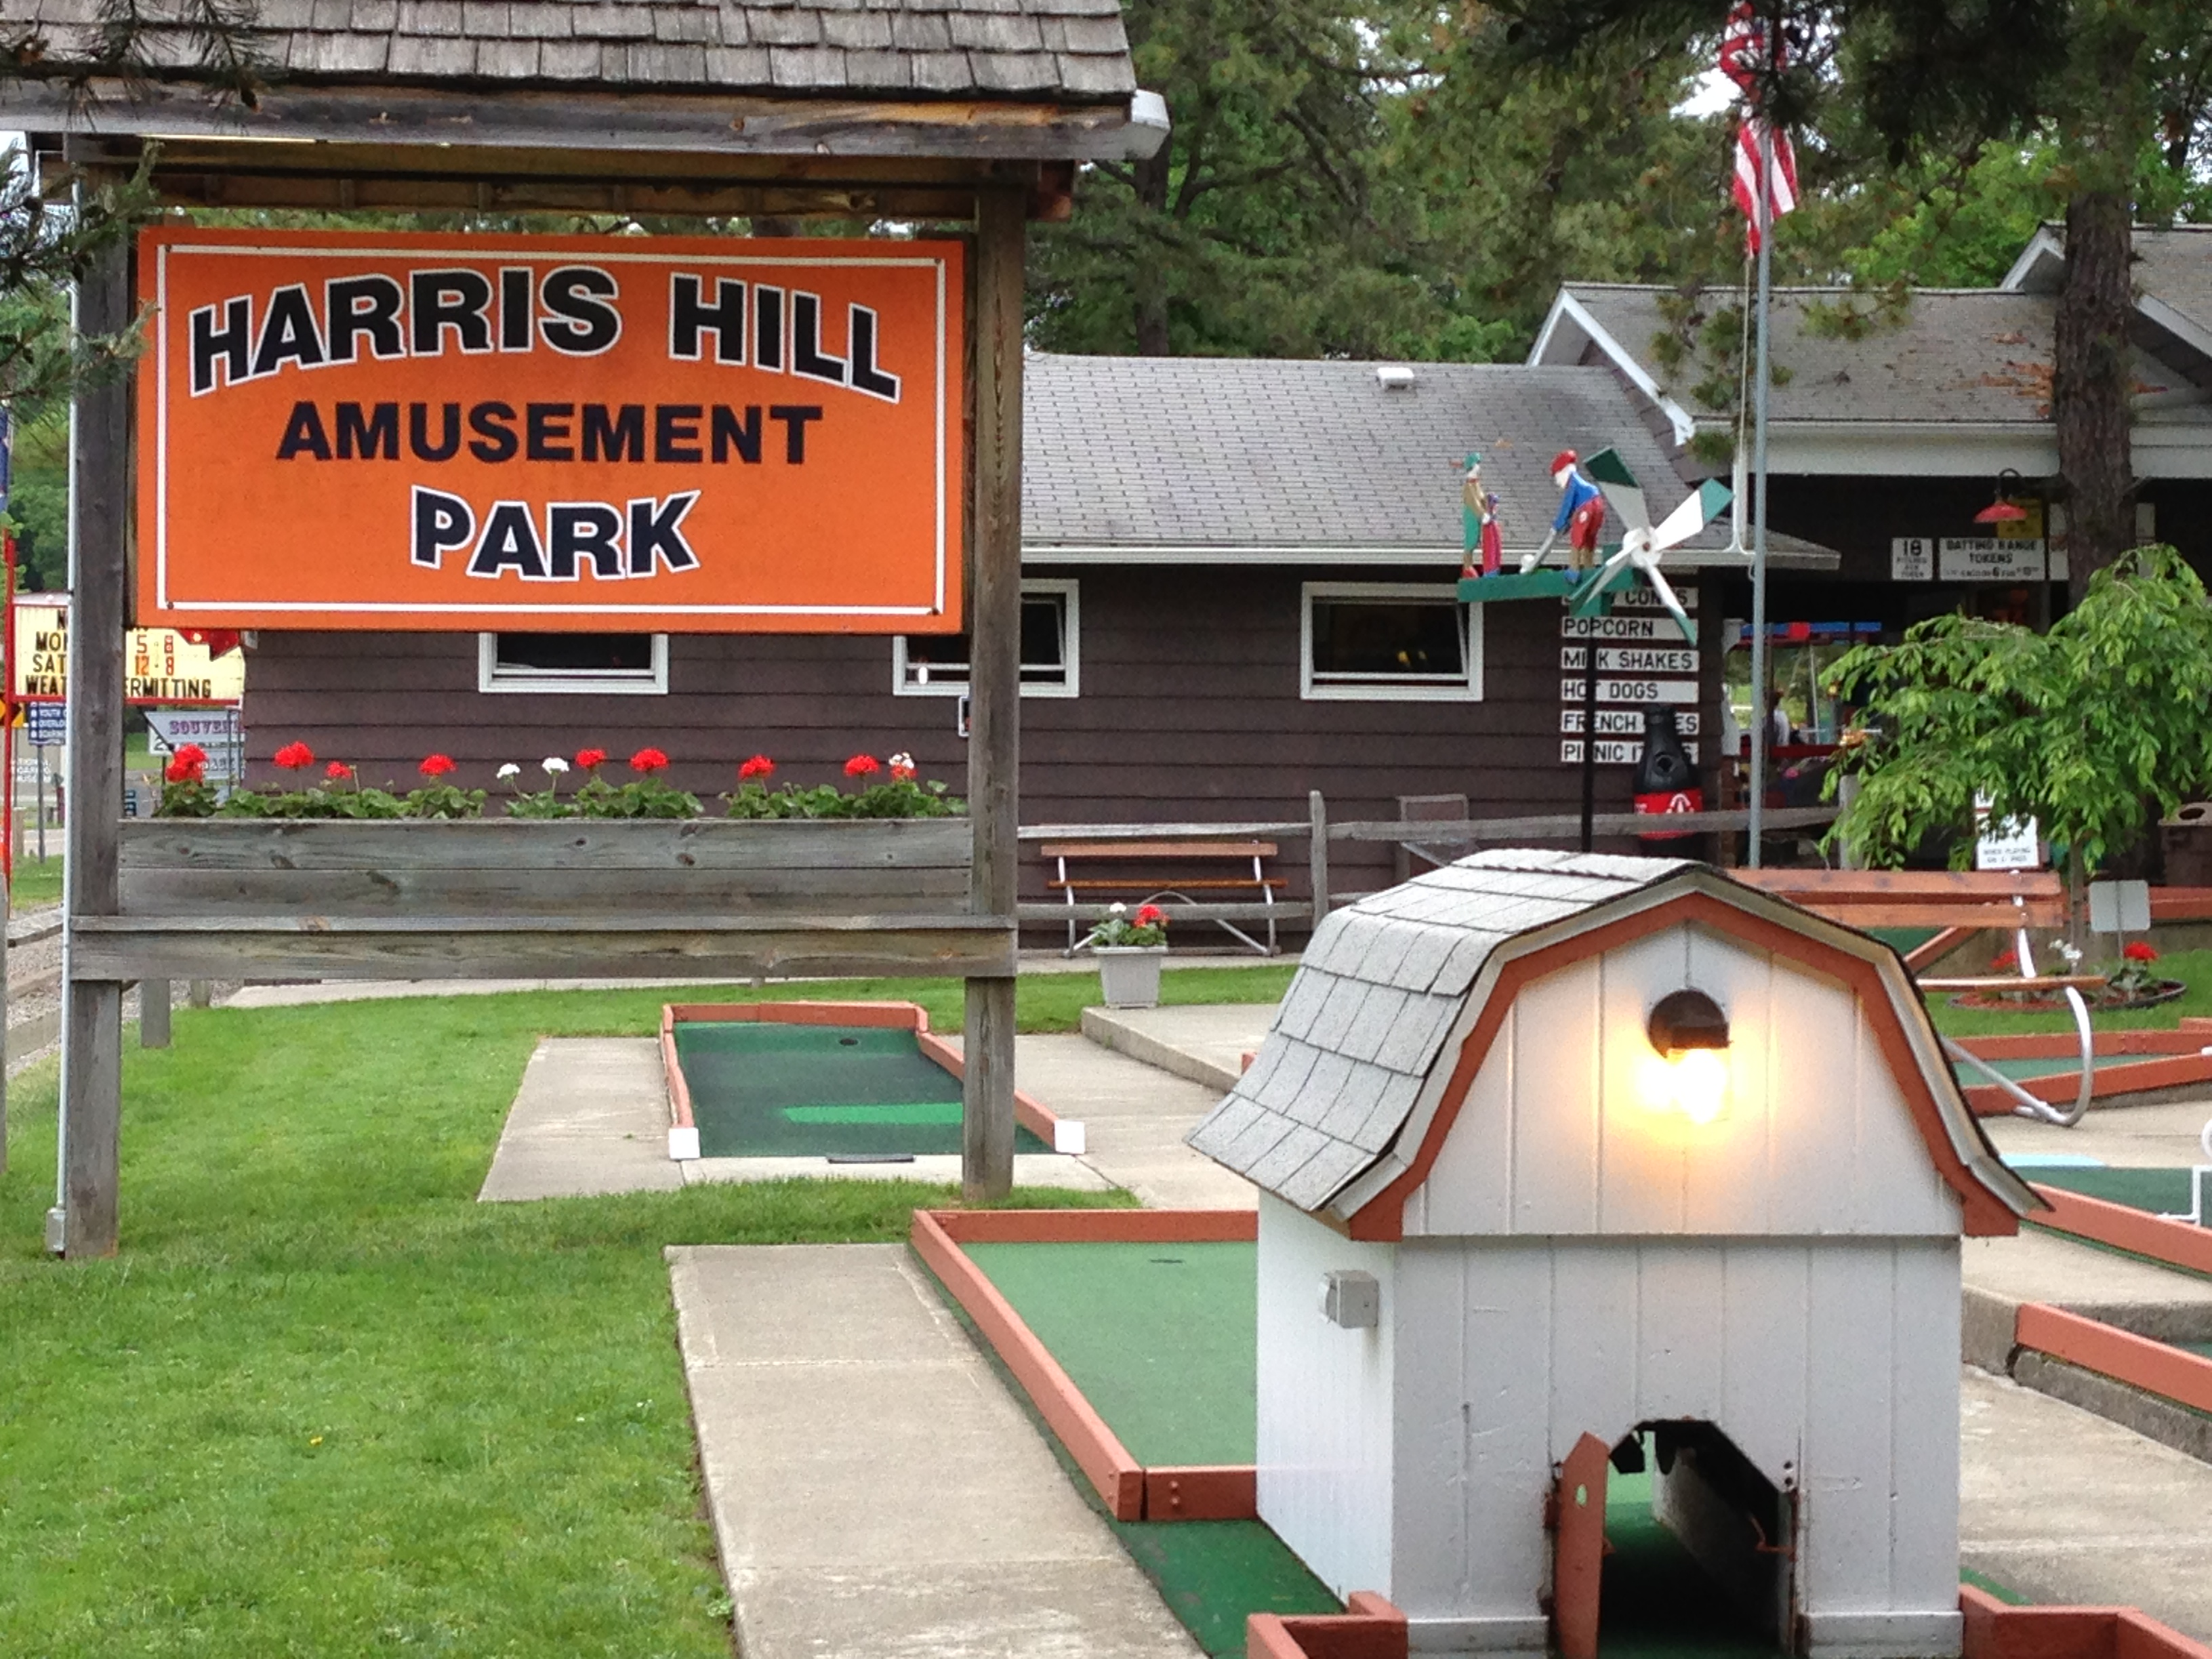 Harris Hill Putt Putt: Some Things Never Get Old